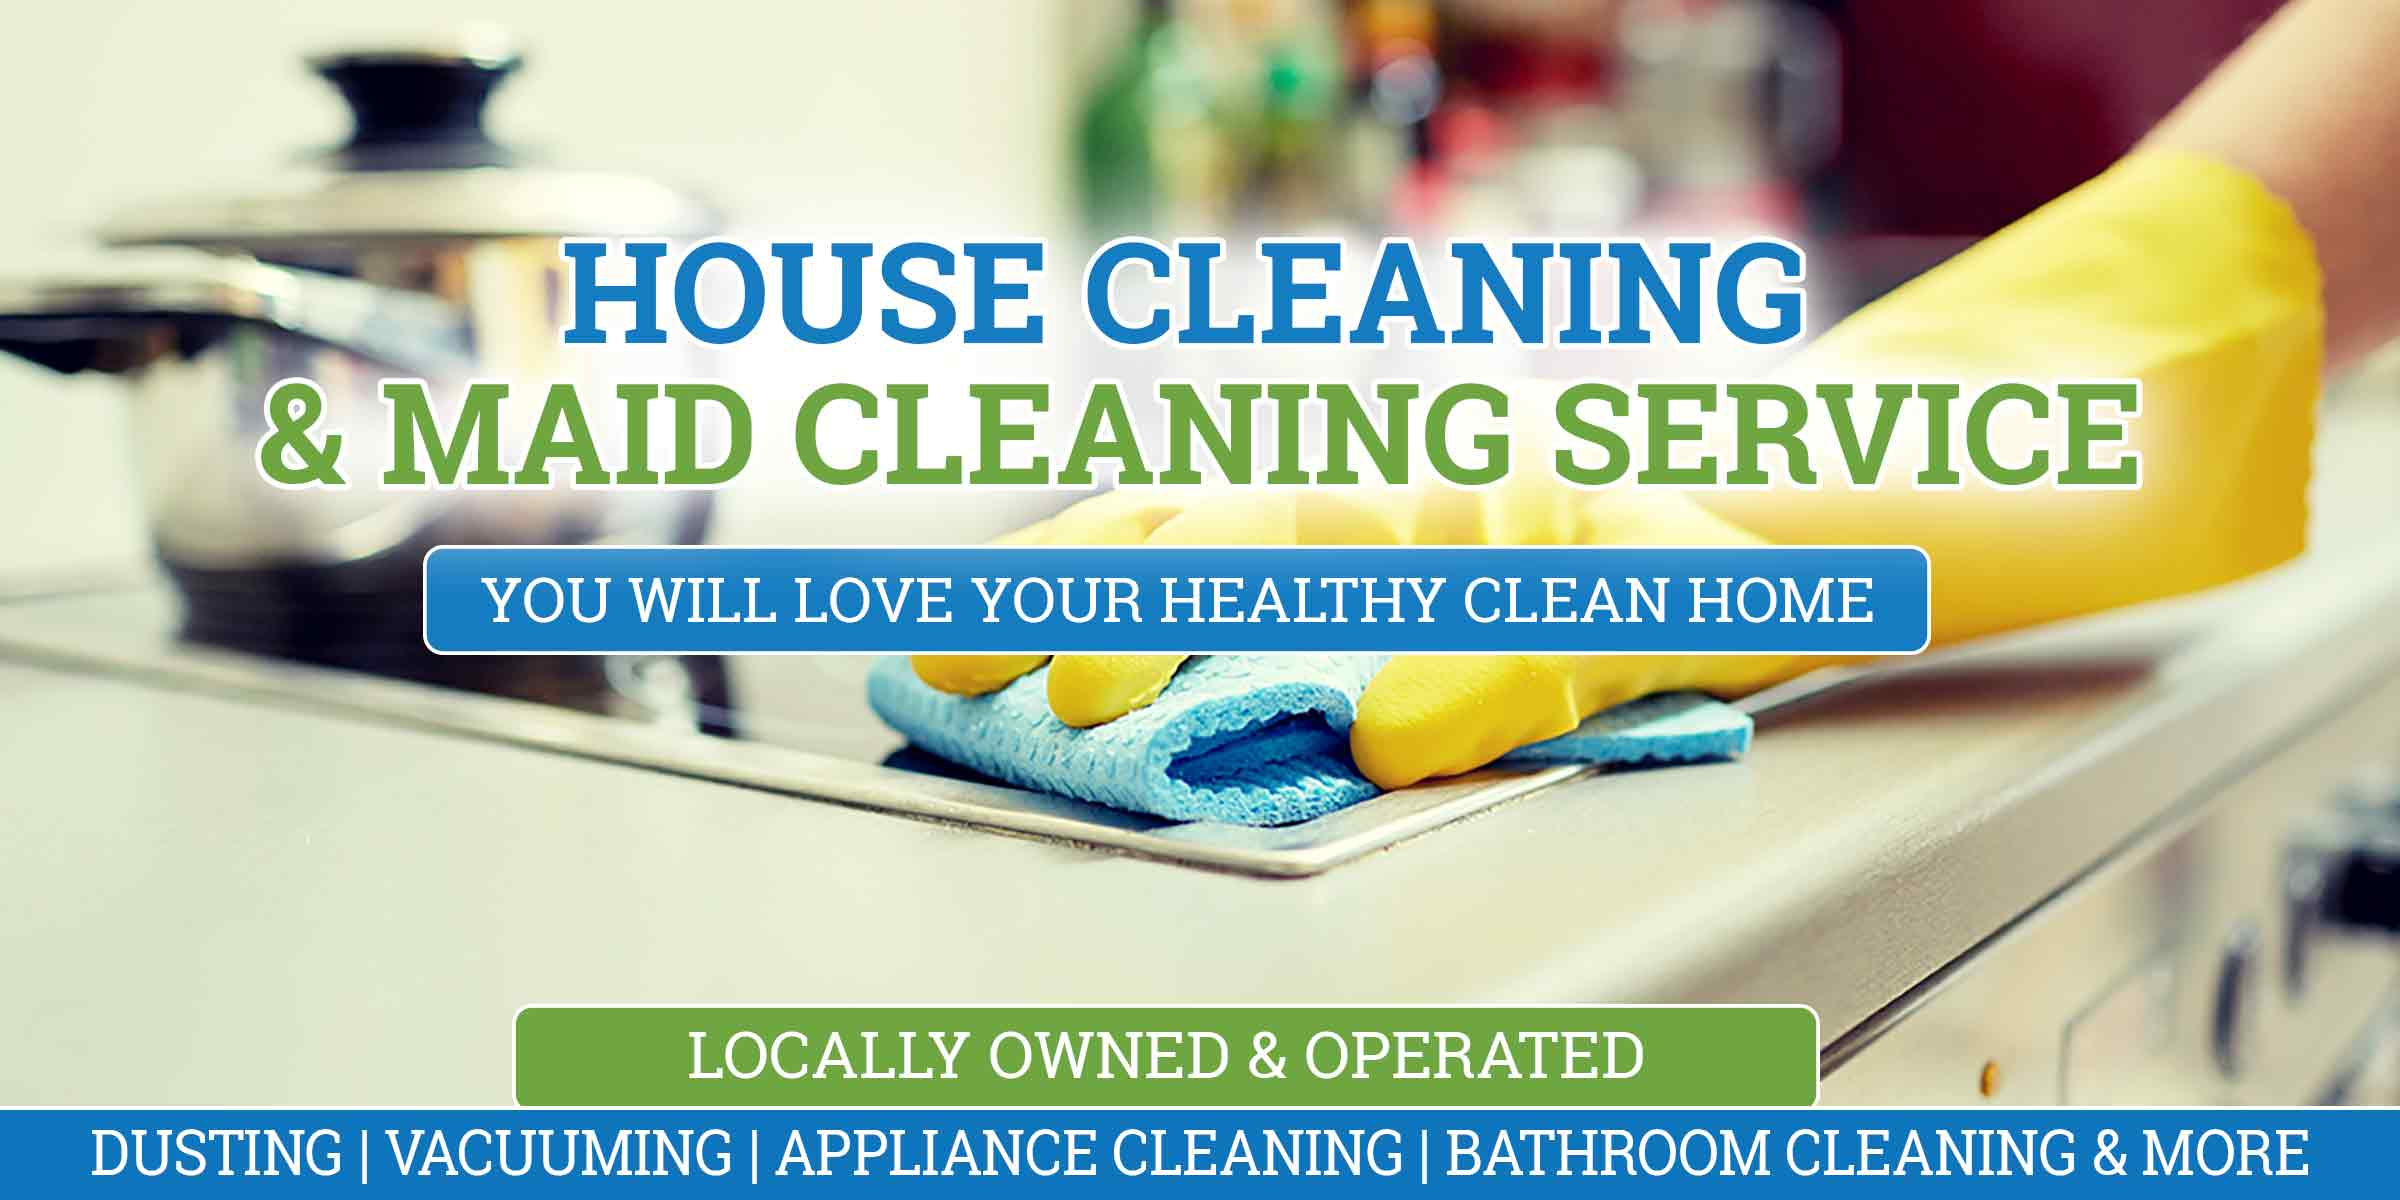 house cleaning and maid service in Tampa